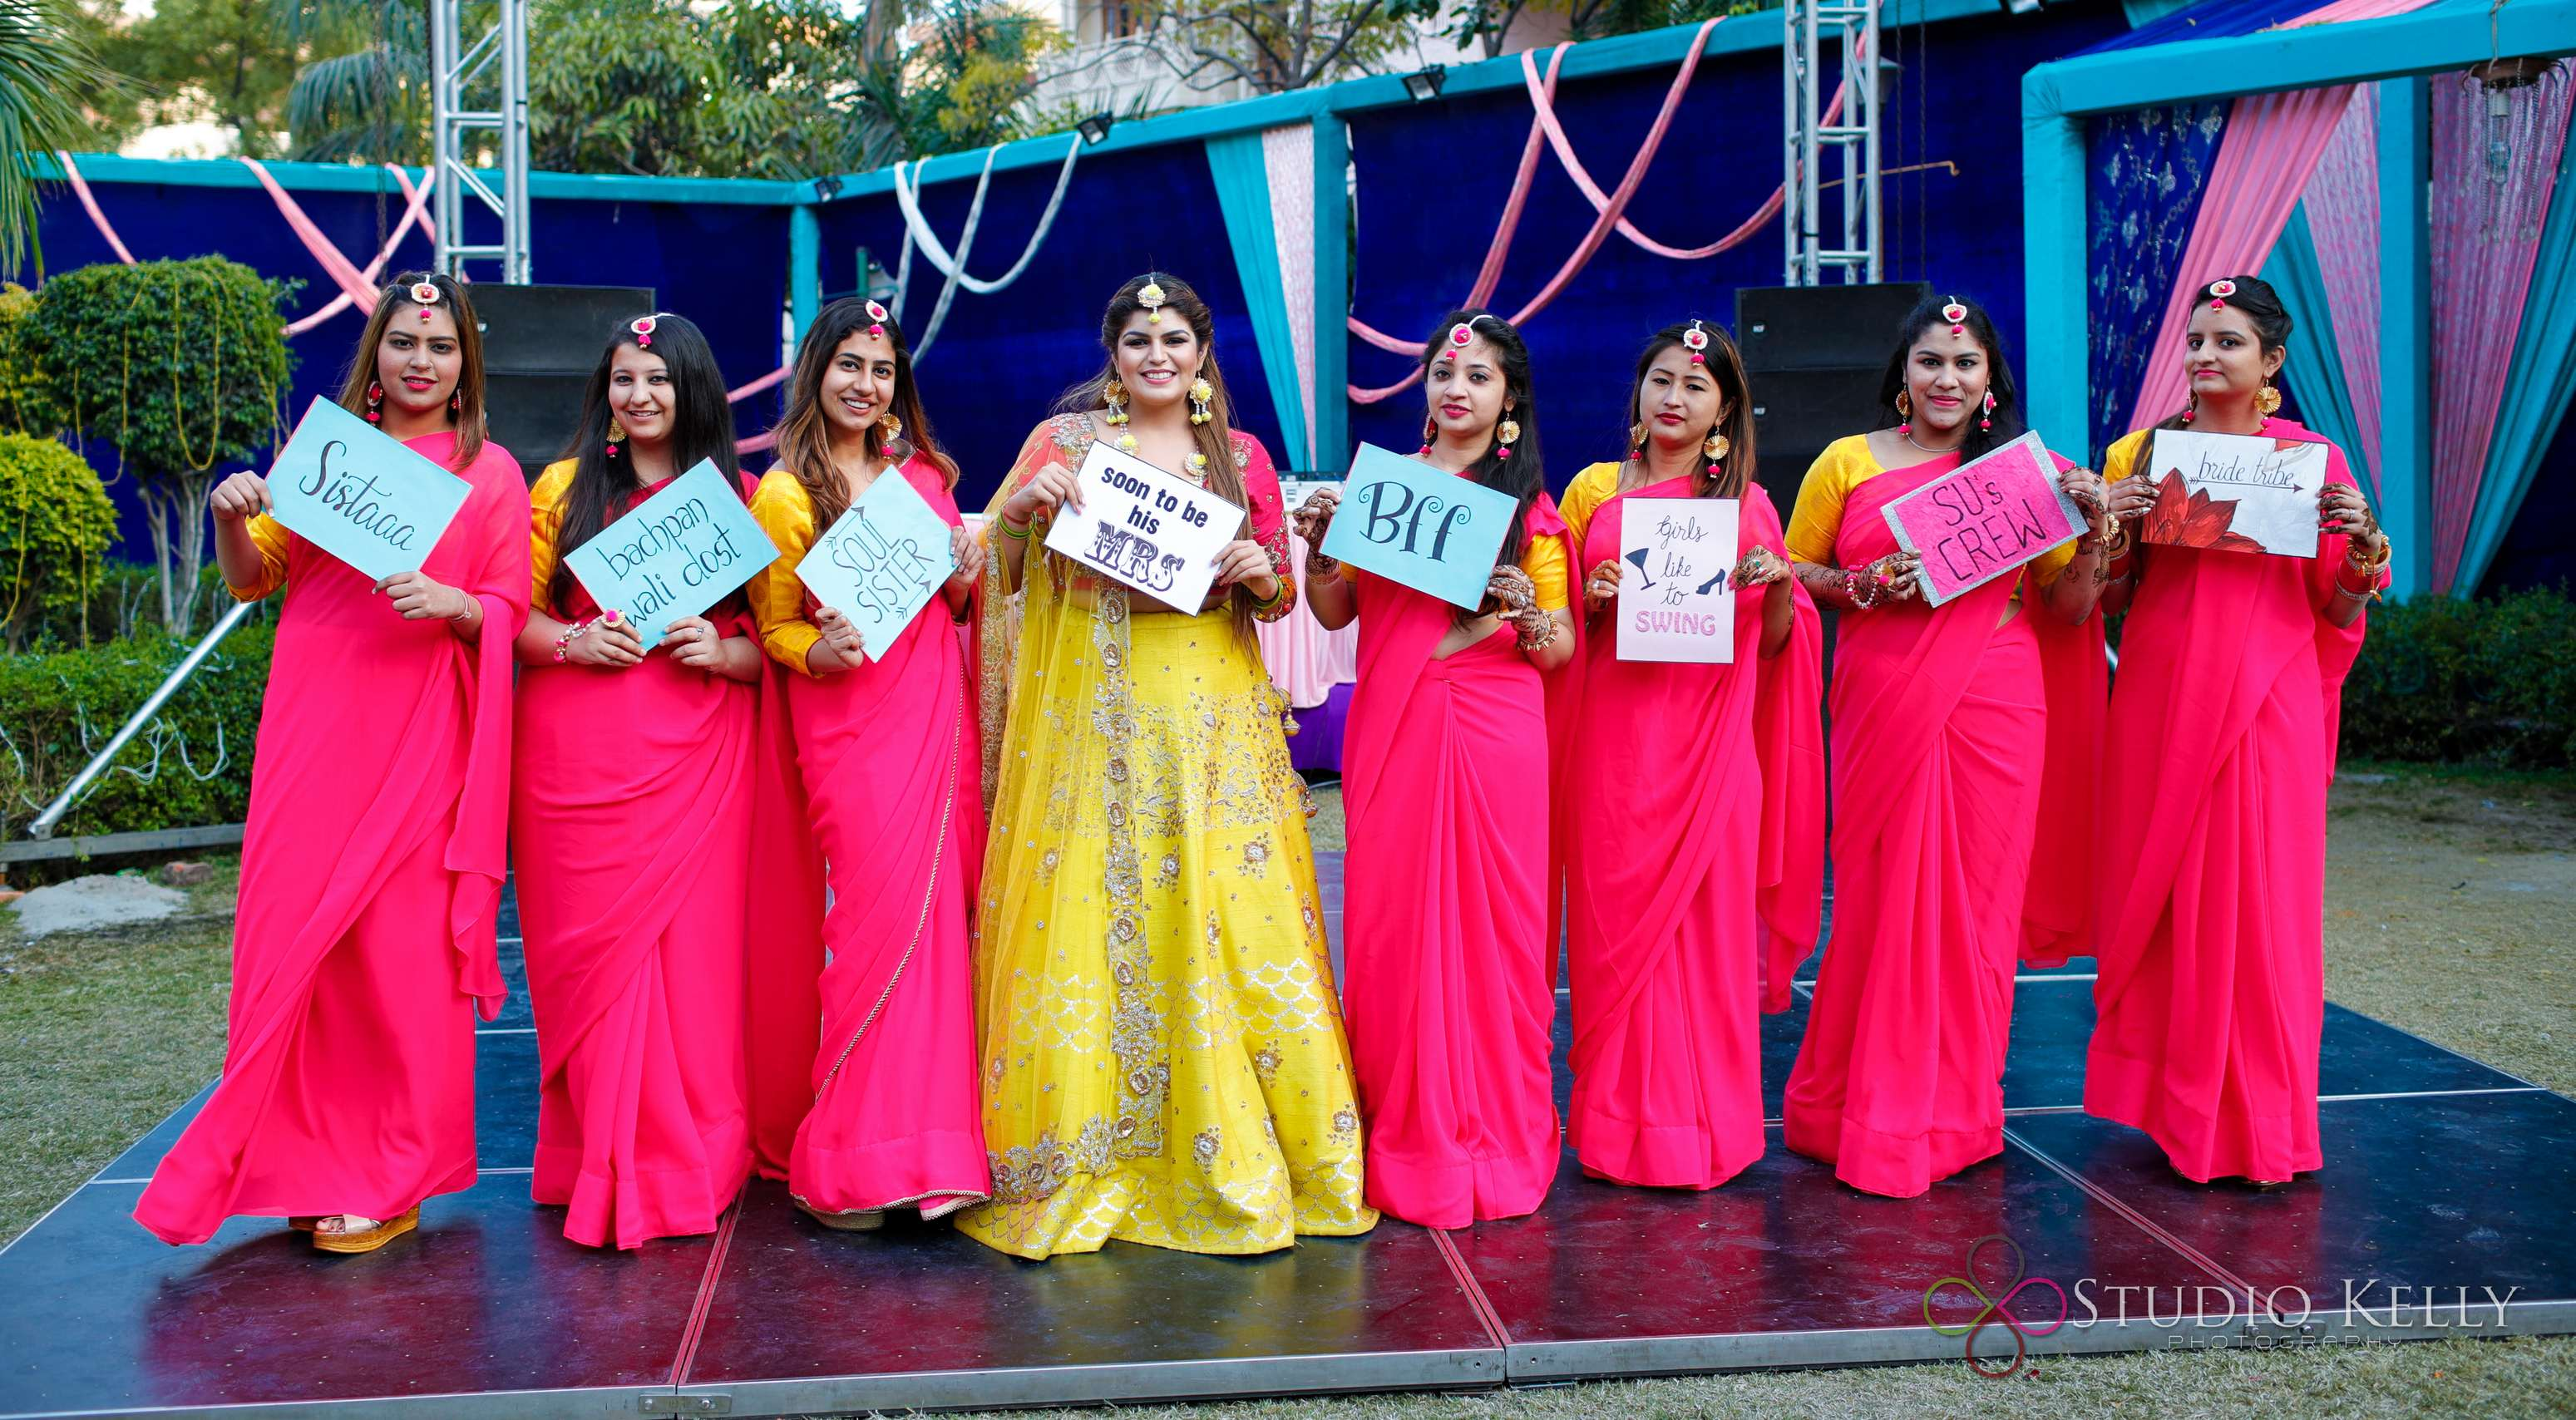 indian weddings | mehendi pictures | indian wedding pictures | Function Mania | Latest Mehendi Picture Ideas | bridesmaids photo ideas | Quirky Pictures | Function Mania